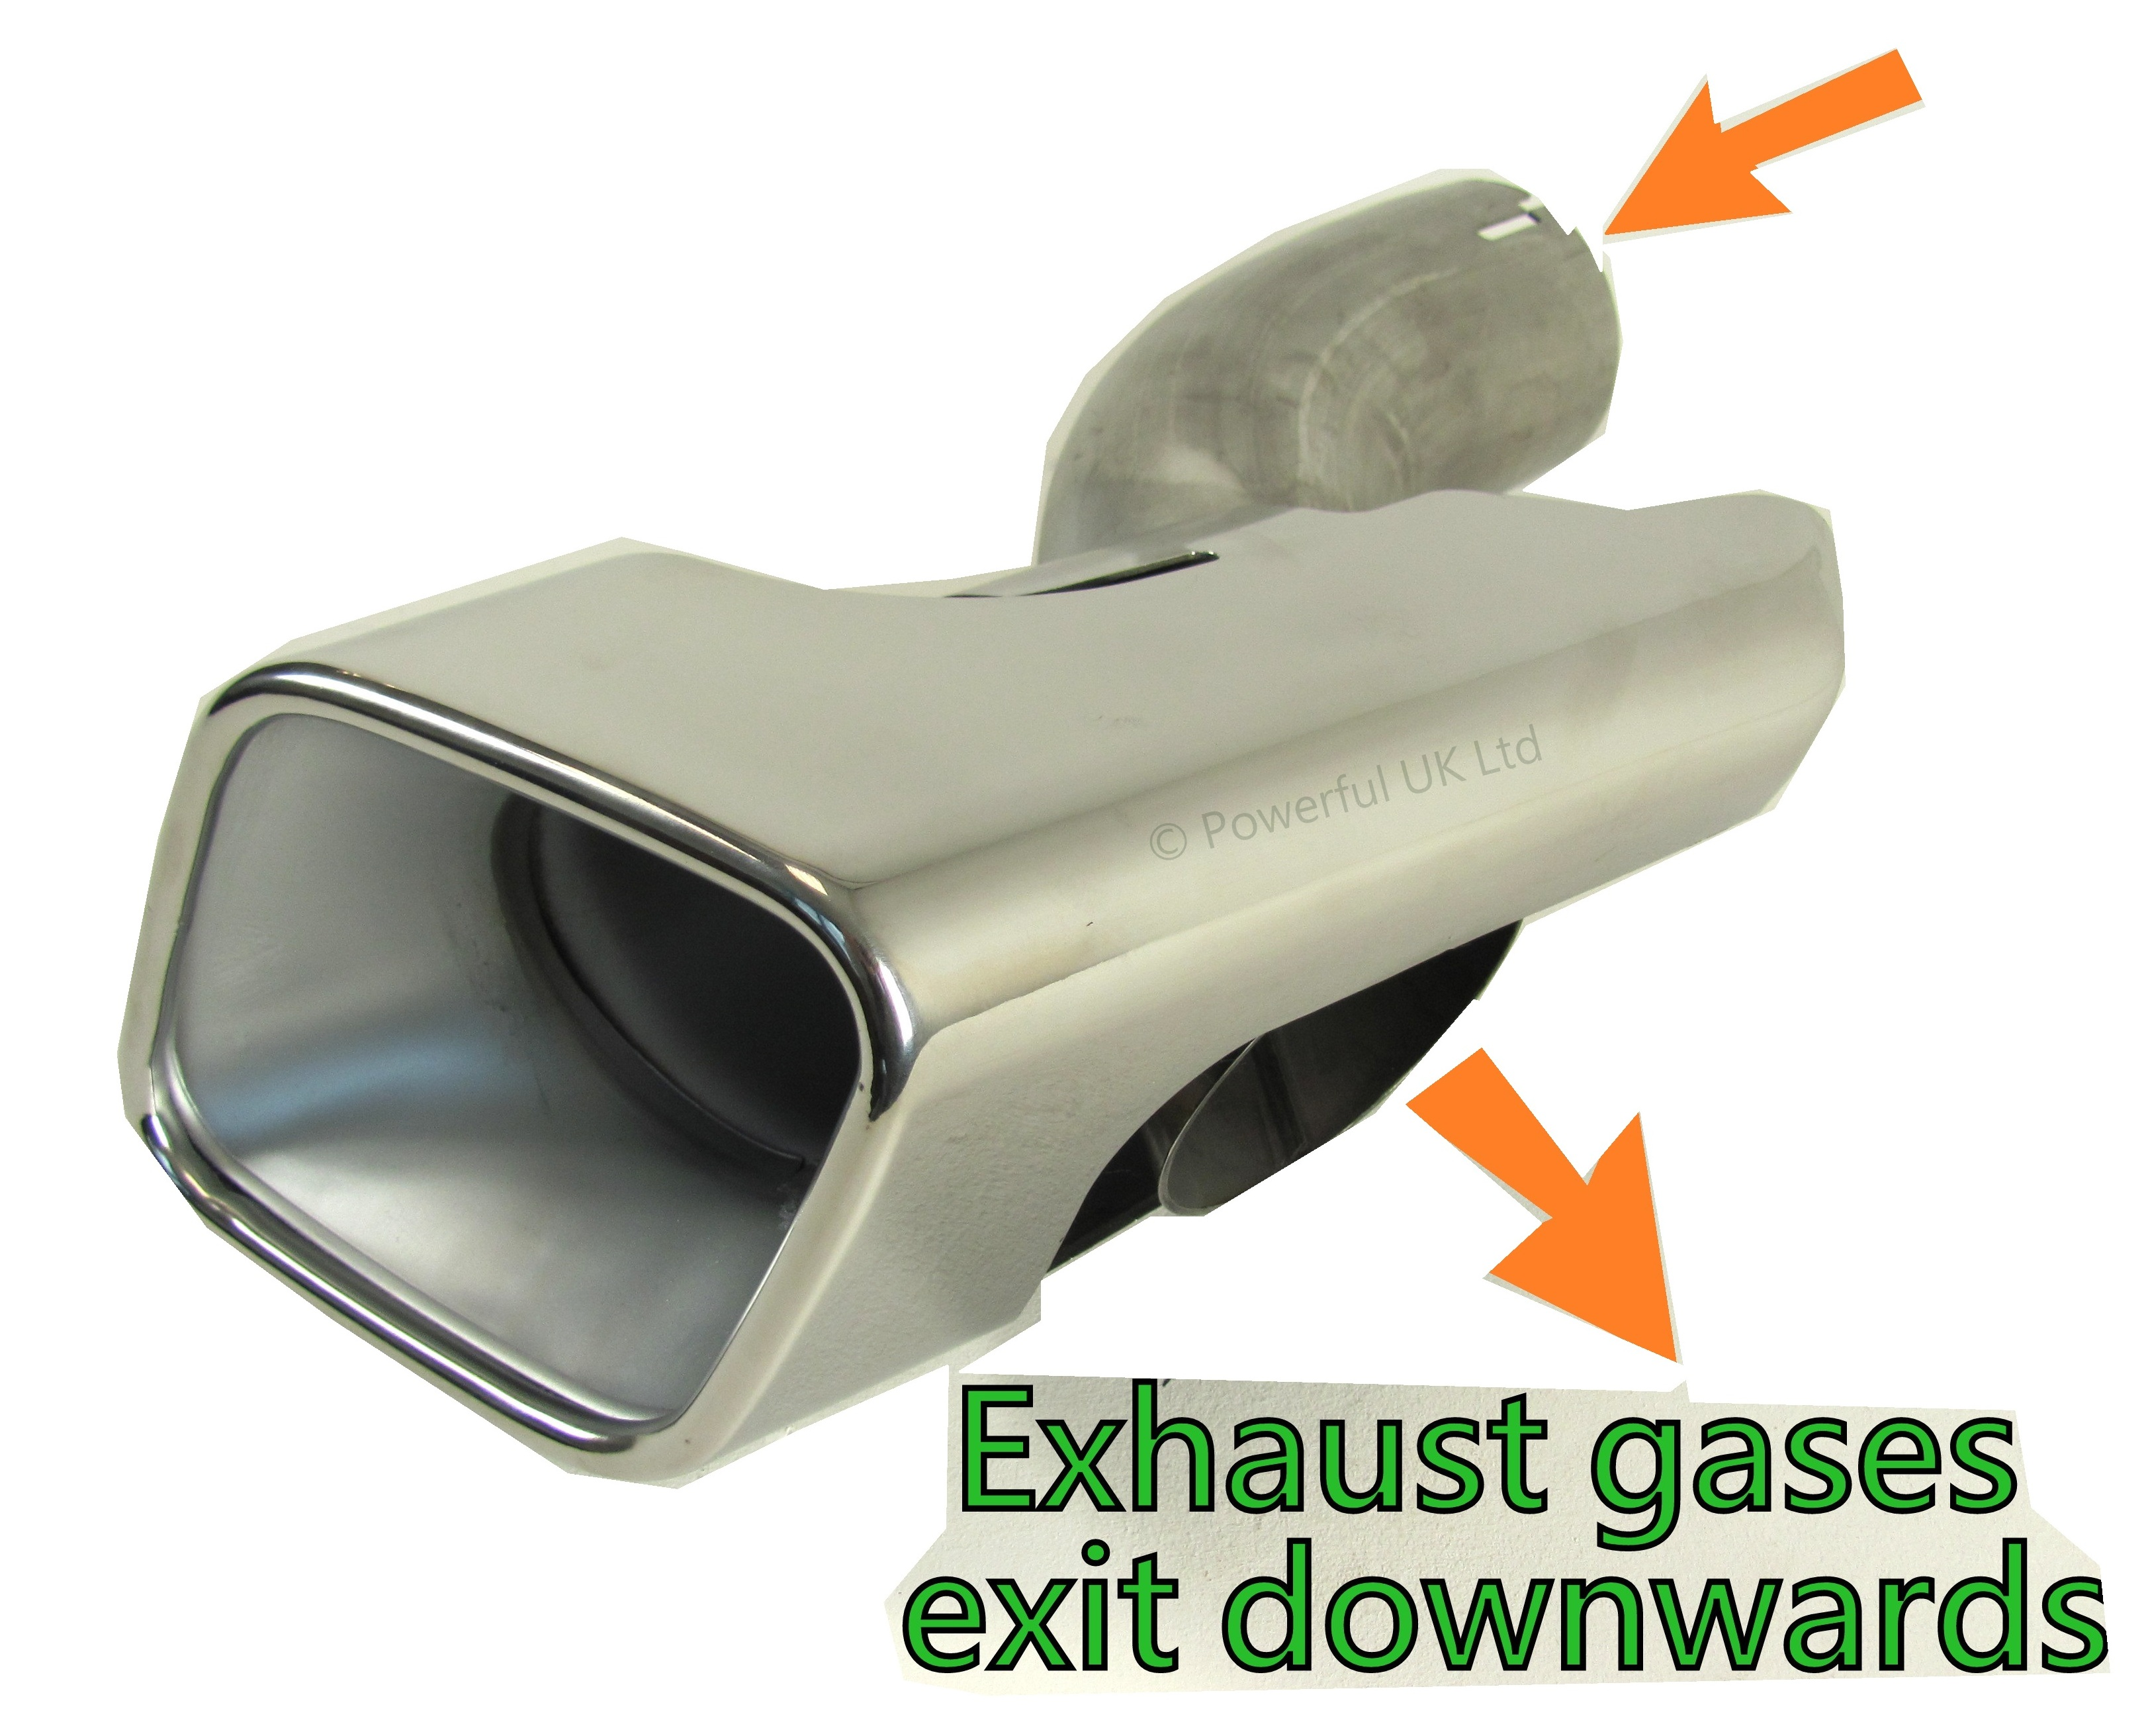 Exhausts tips tailpipe Range Rover Sport Autobiography Diesel rear bumper TDV6